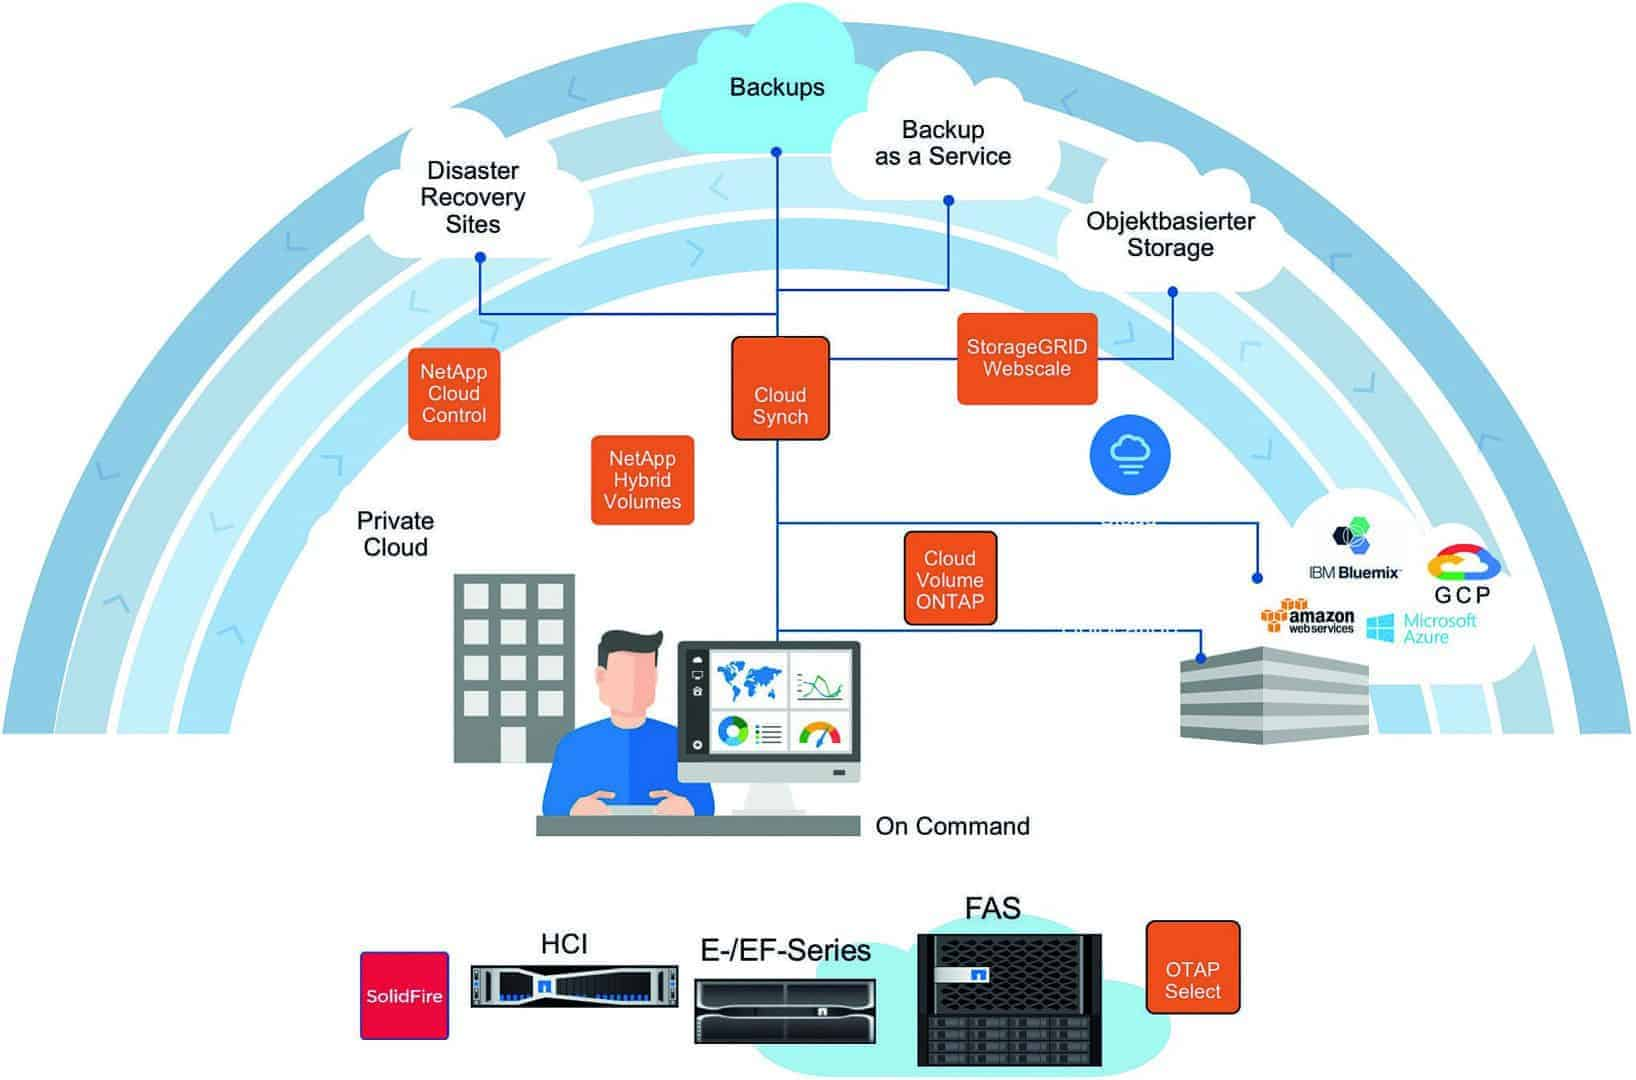 Fig. 2: The data fabric architecture of NetApp makes data management on-premise and in the public cloud possible.